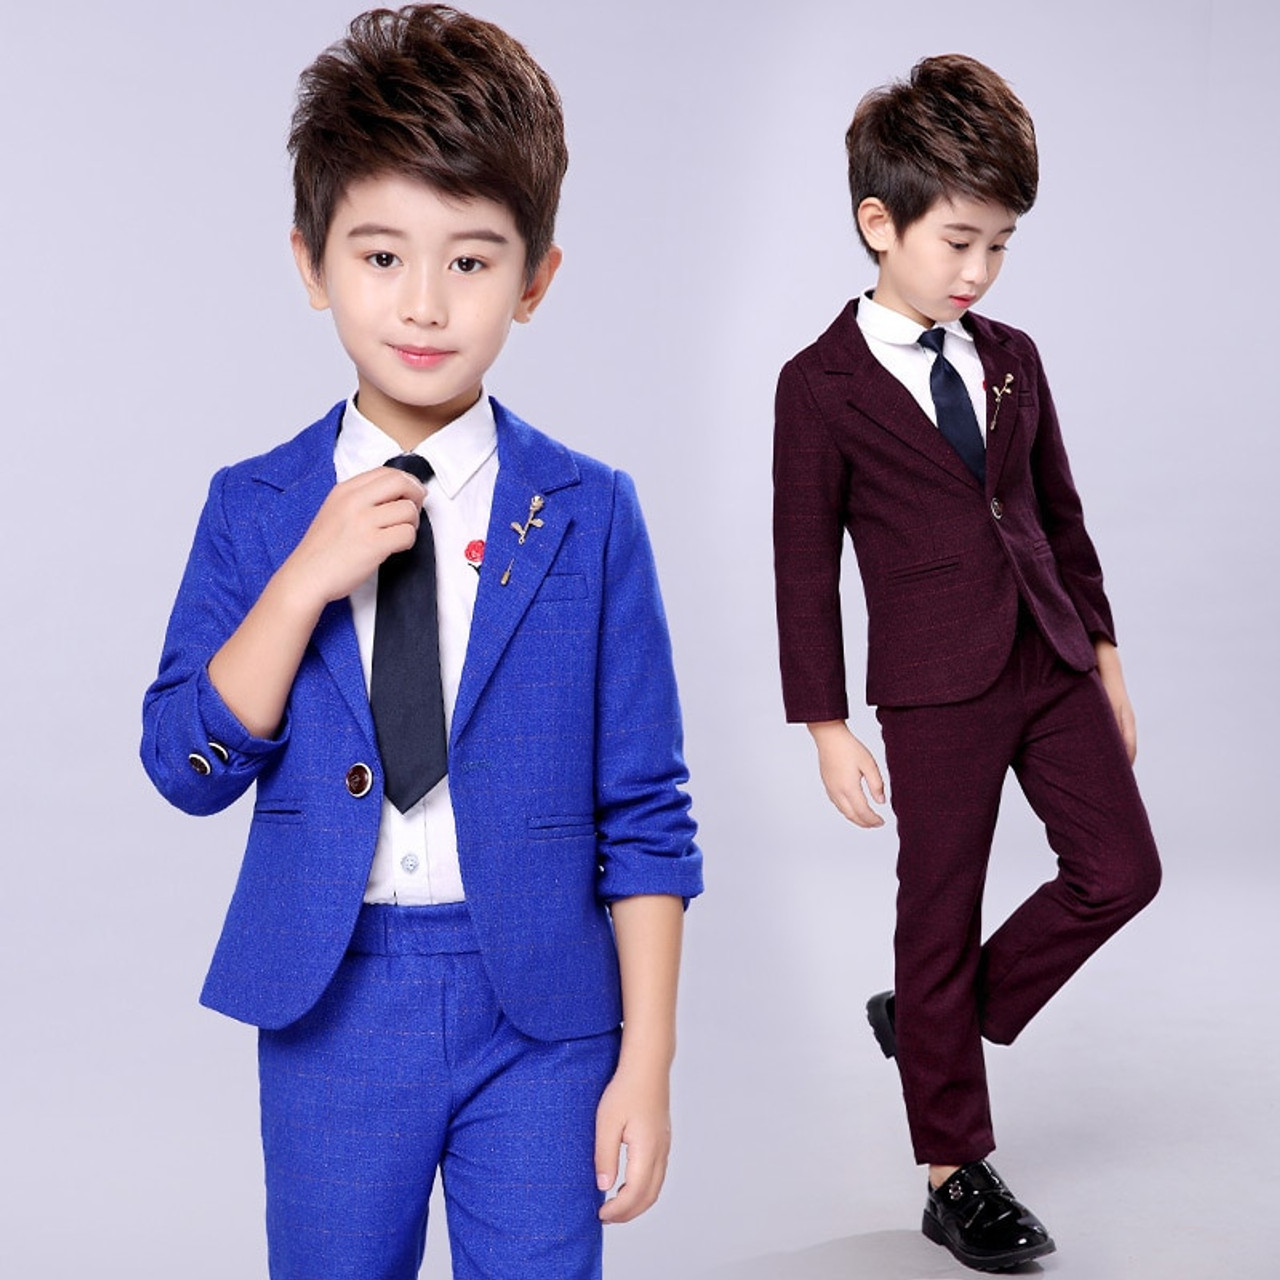 Studern School Boys Kids Tie Children Baby Wedding Party Formal Ball Tie Necktie